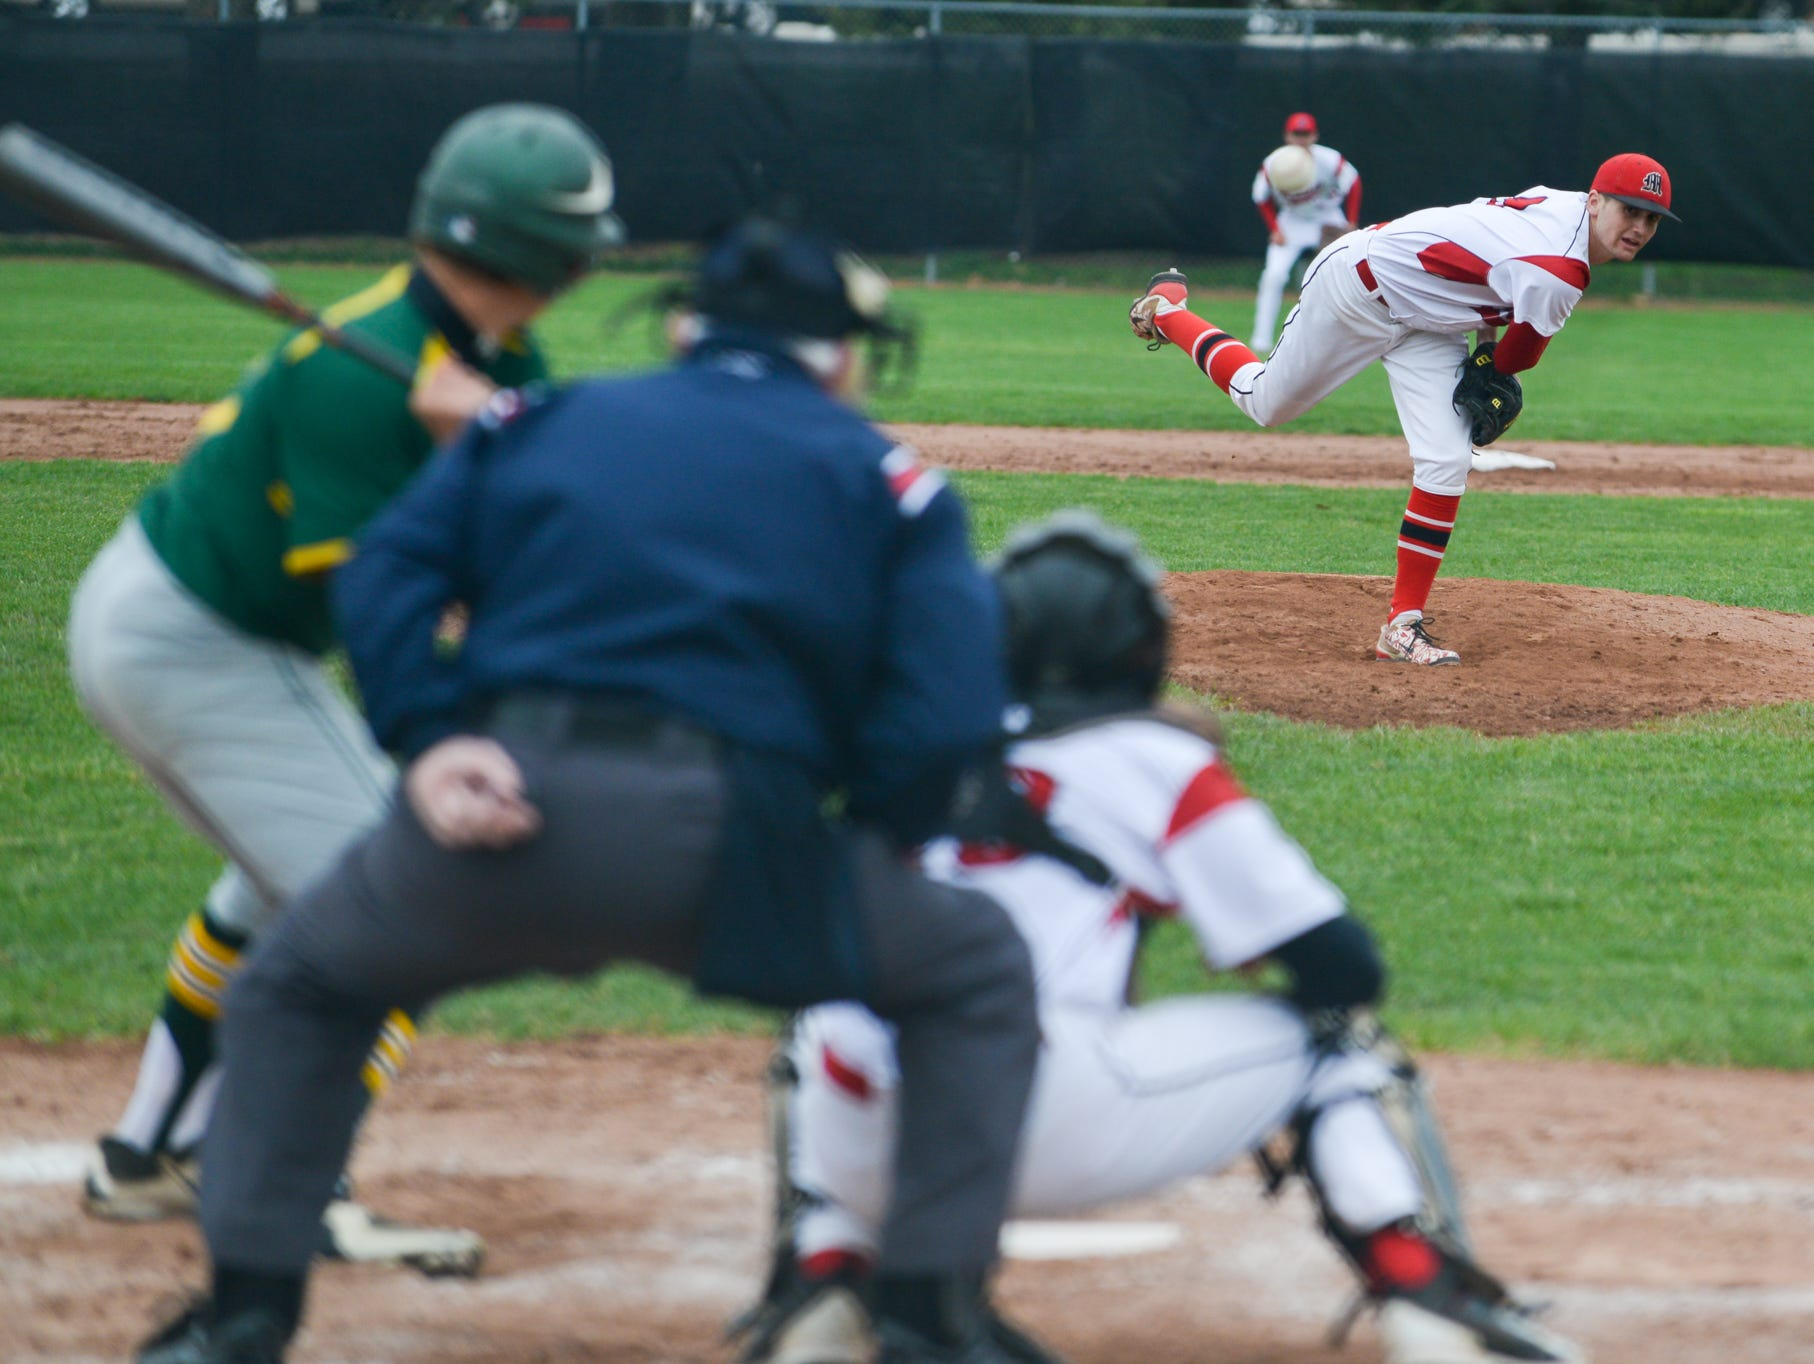 Marshall's Drew Devine pitches against Pennfield earlier this season.